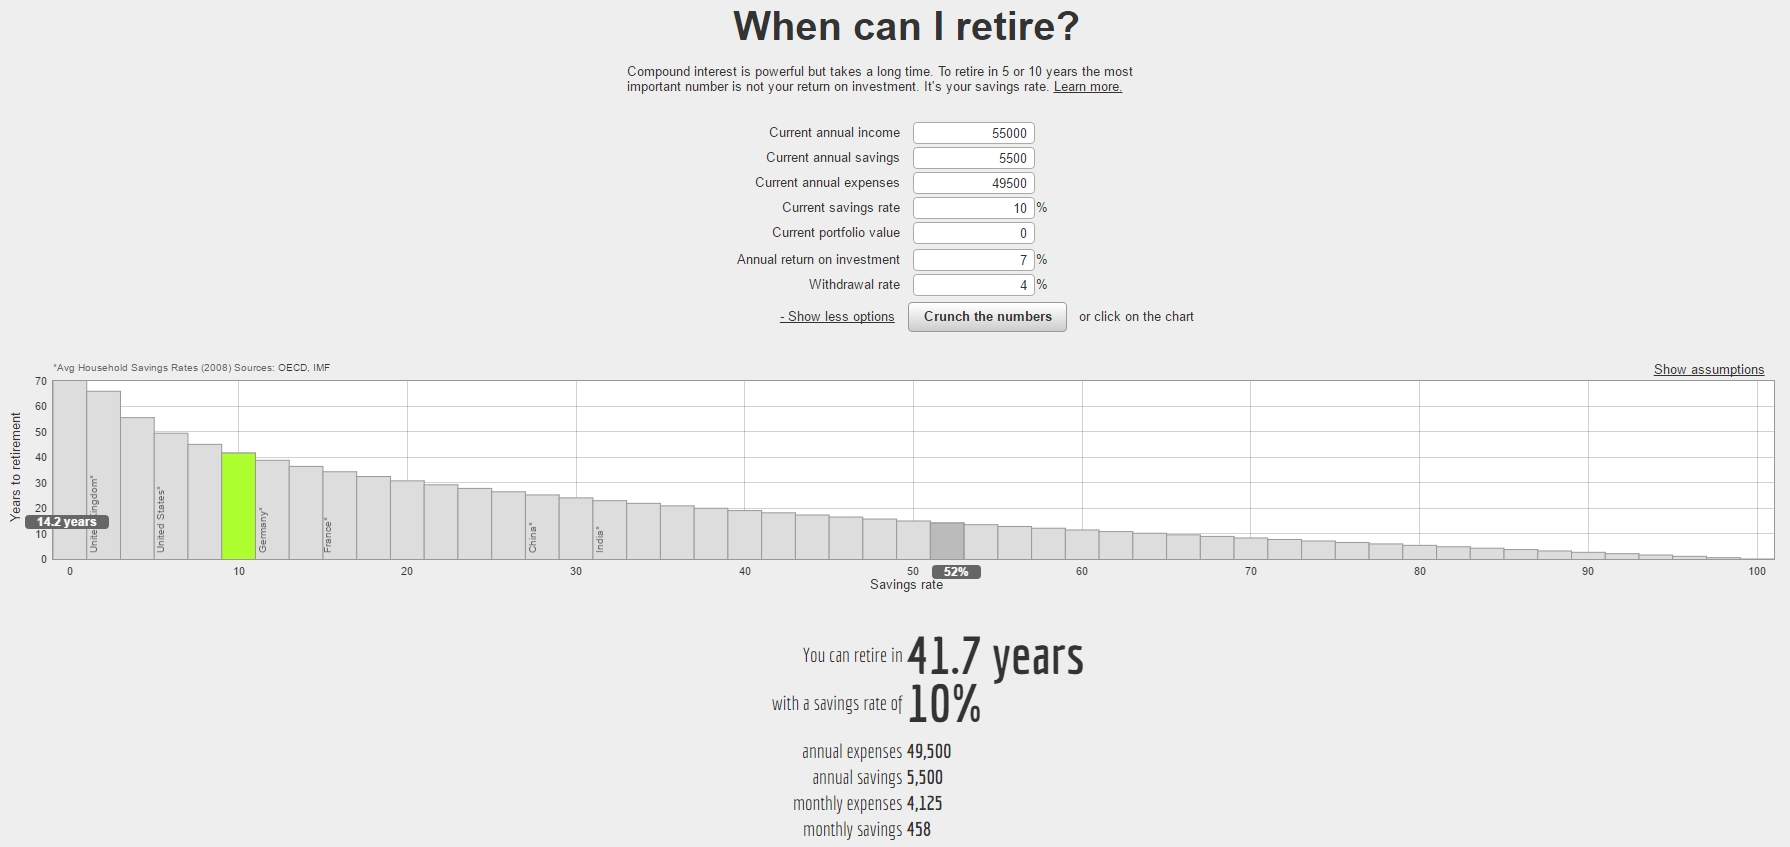 Networthify's Early Retirement Calculator - 10% Savings Rate at $55,000 annual income